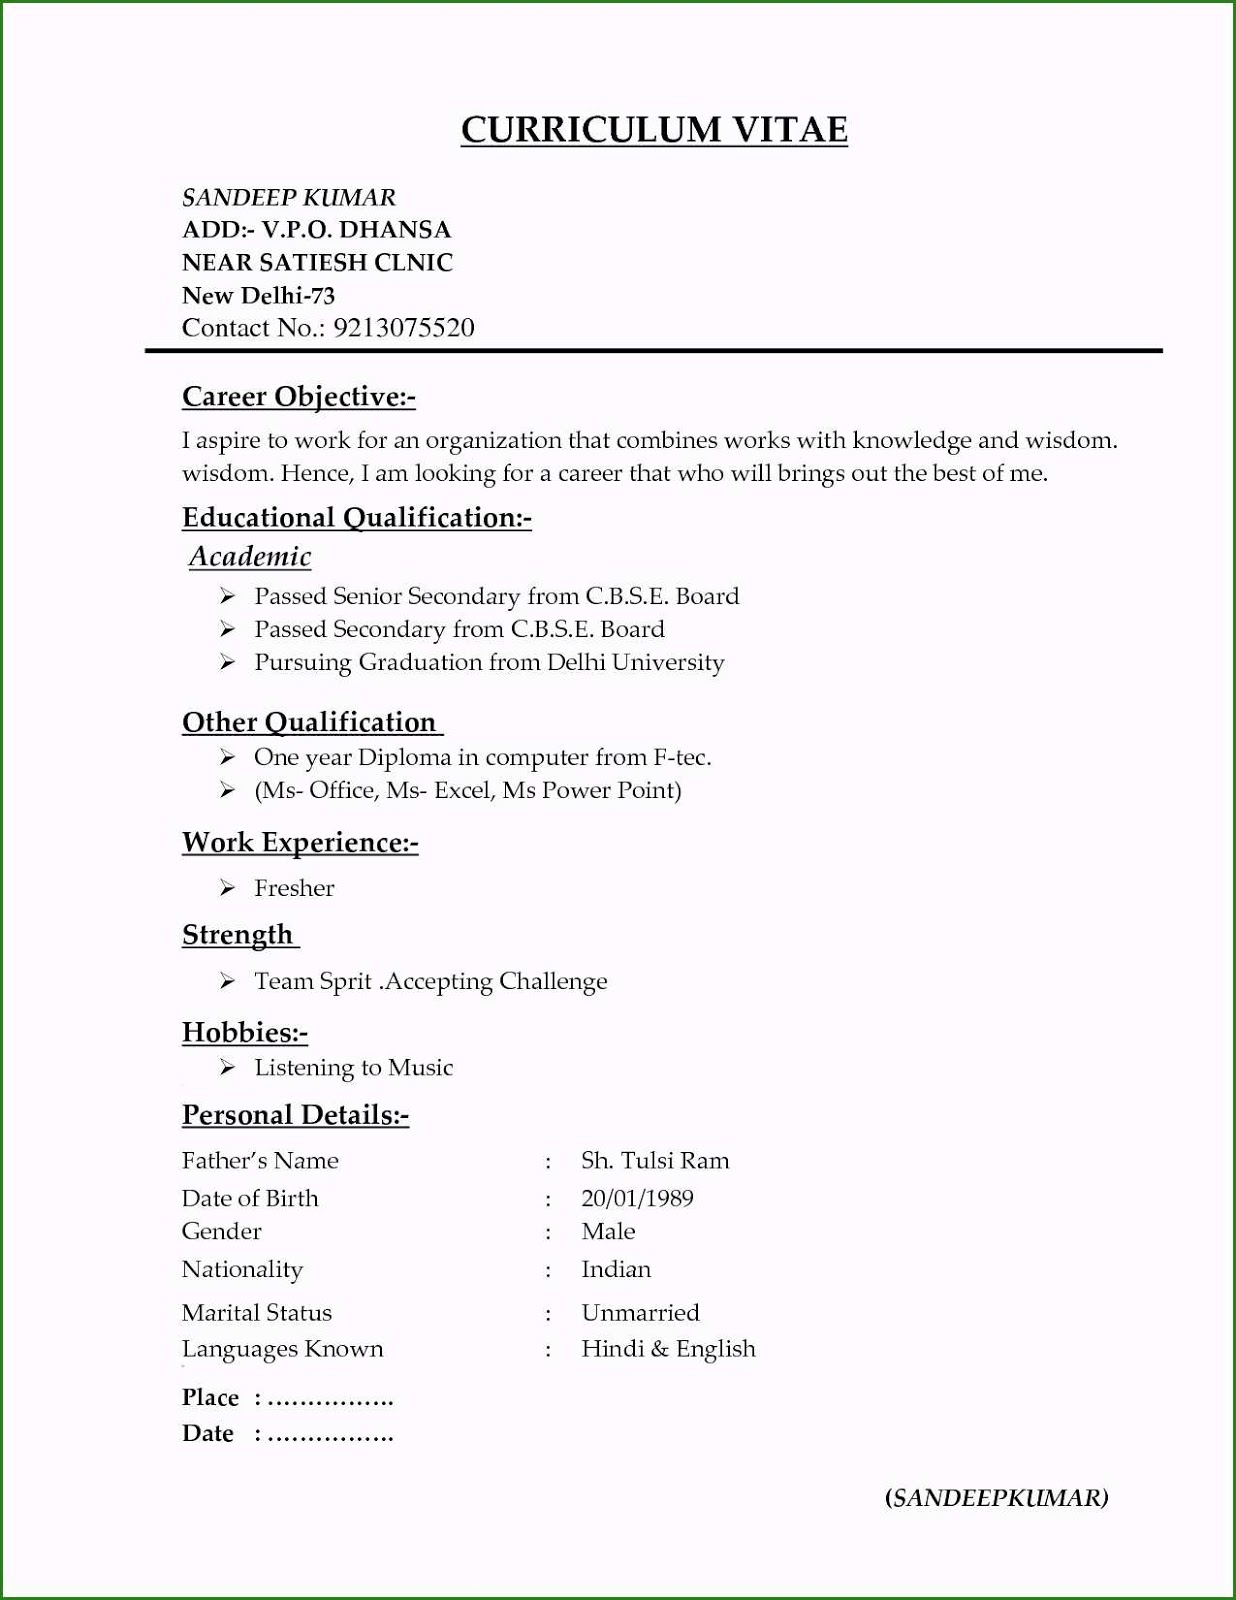 biodata for marriage 2019 biodata for marriage pdf biodata for marriage for boy biodata for marriage format 2020 biodata for marriage proposal biodata for marriage doc biodata for marriage online biodata for marriage